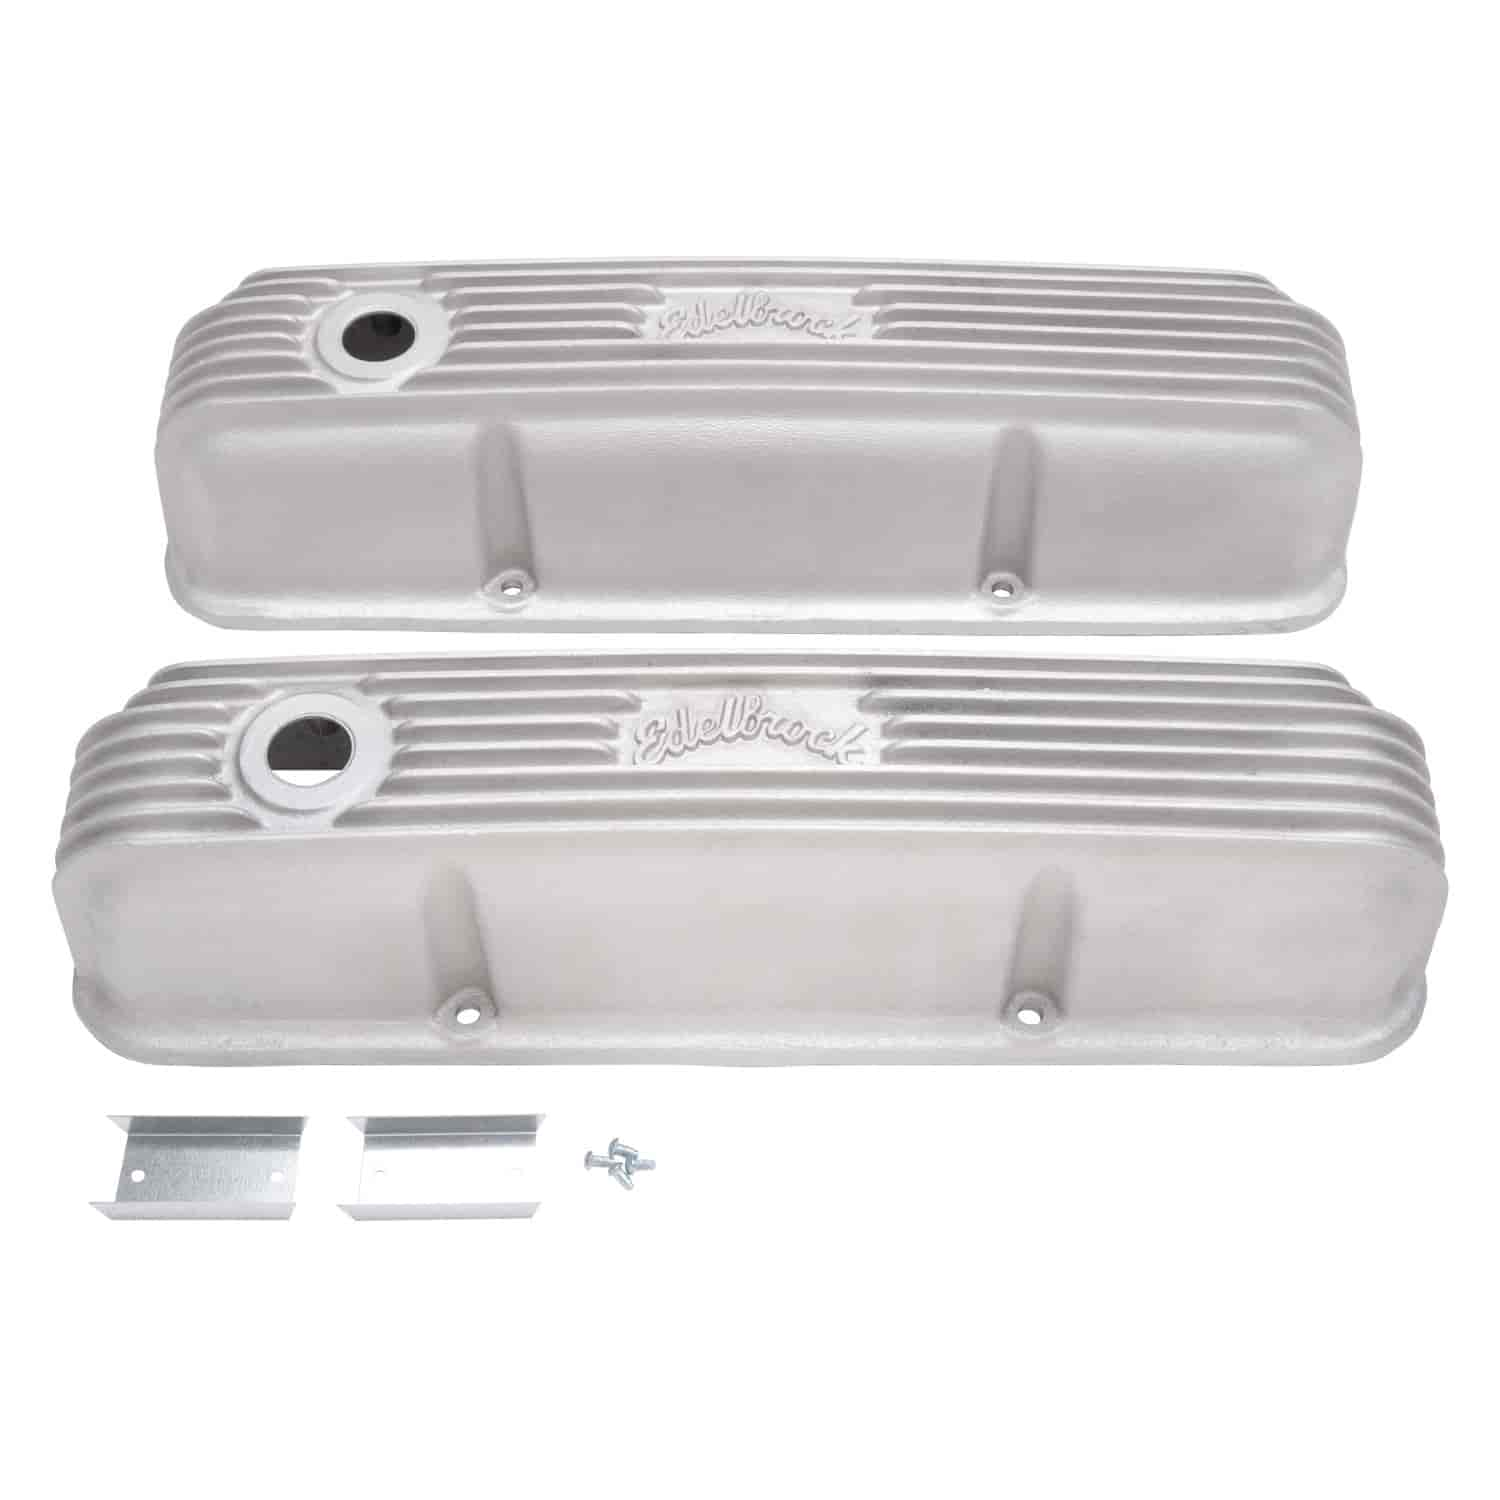 Edelbrock 41629 - Edelbrock Classic Series Valve Covers & Air Cleaners